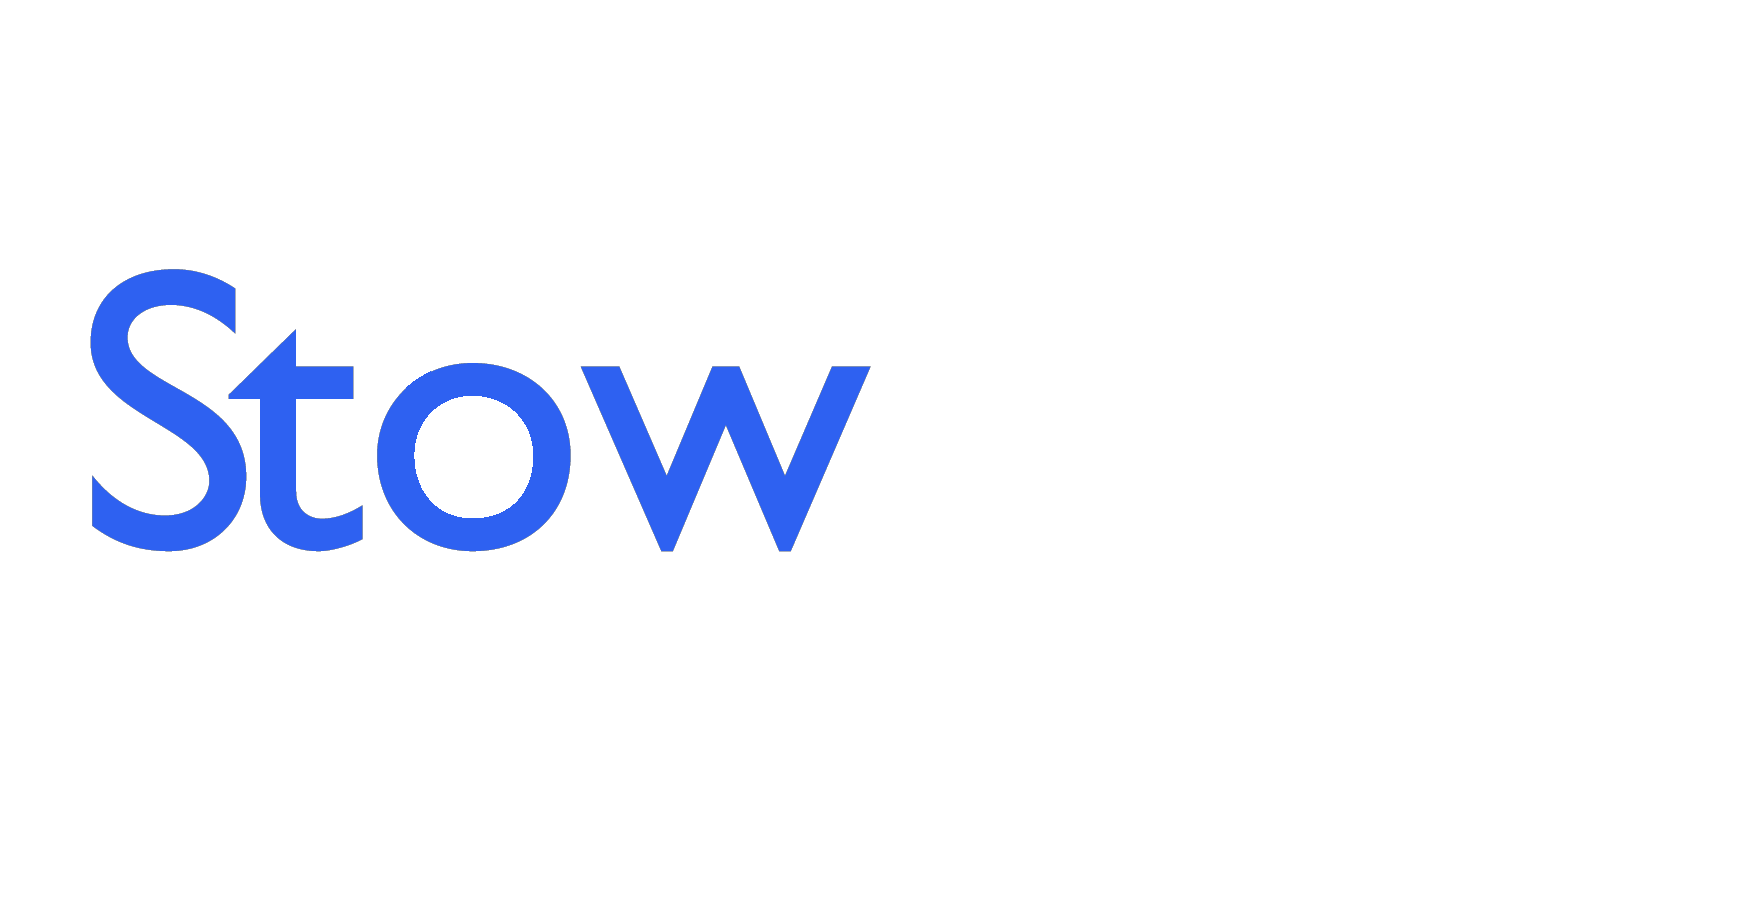 Stowtown Records | The Perrys